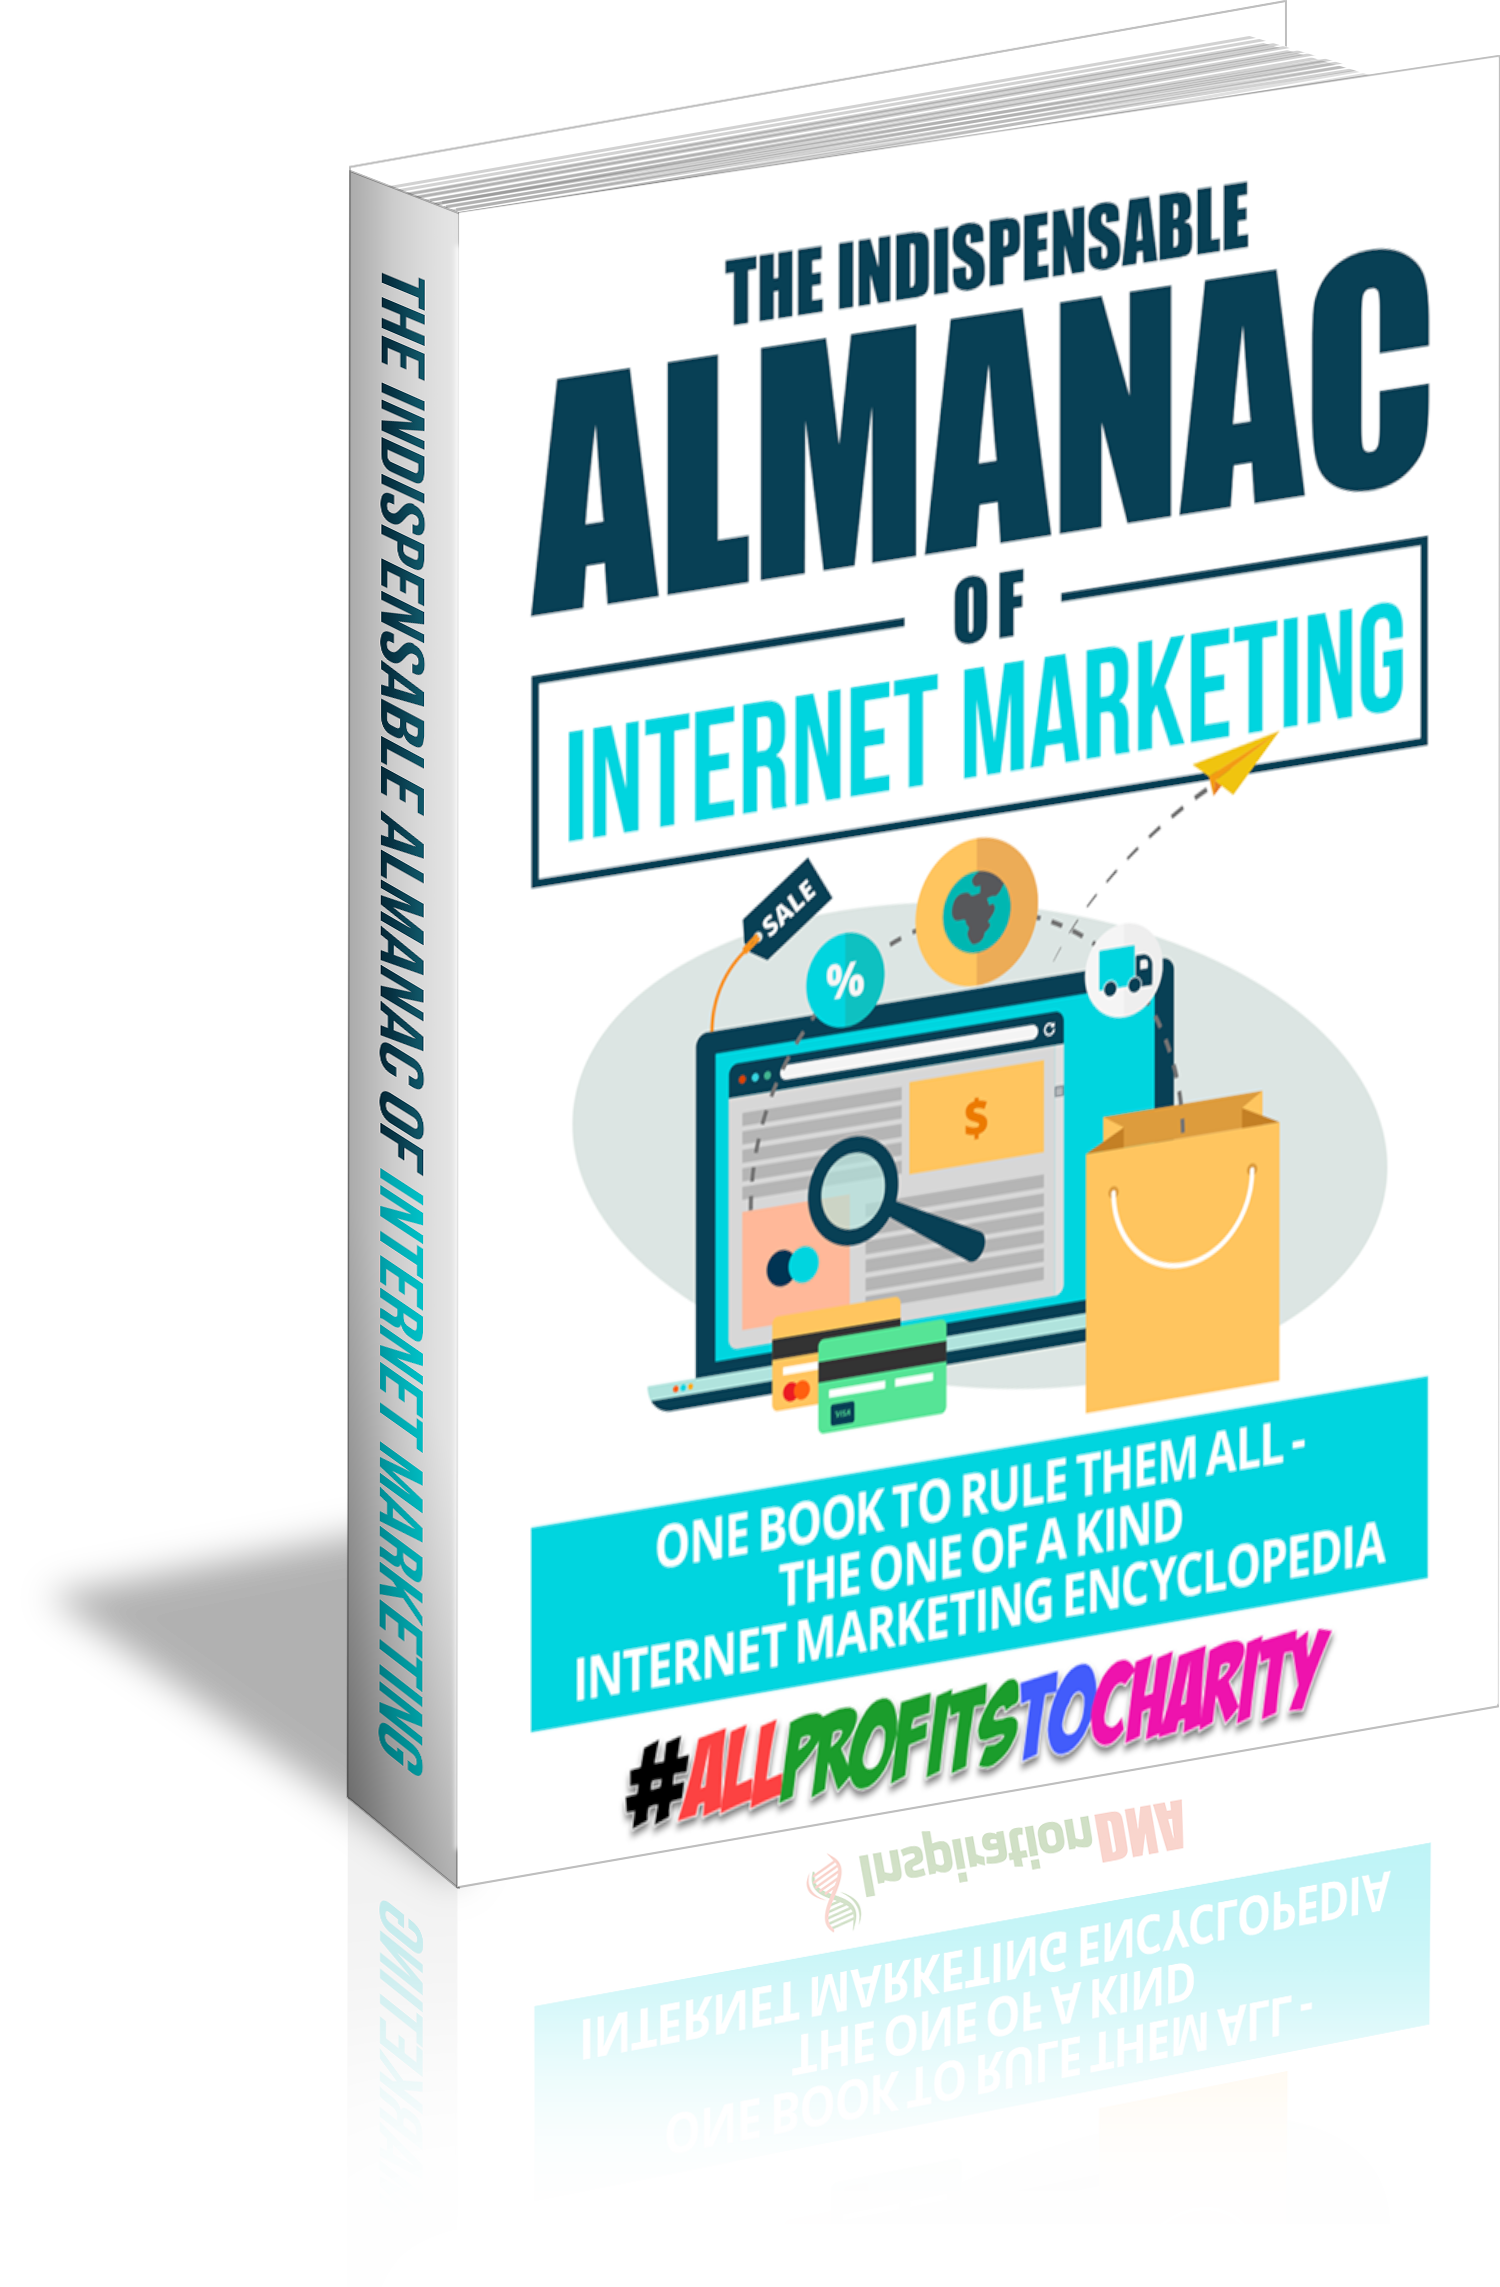 The Indispensable Almanac Of Internet Marketing cover